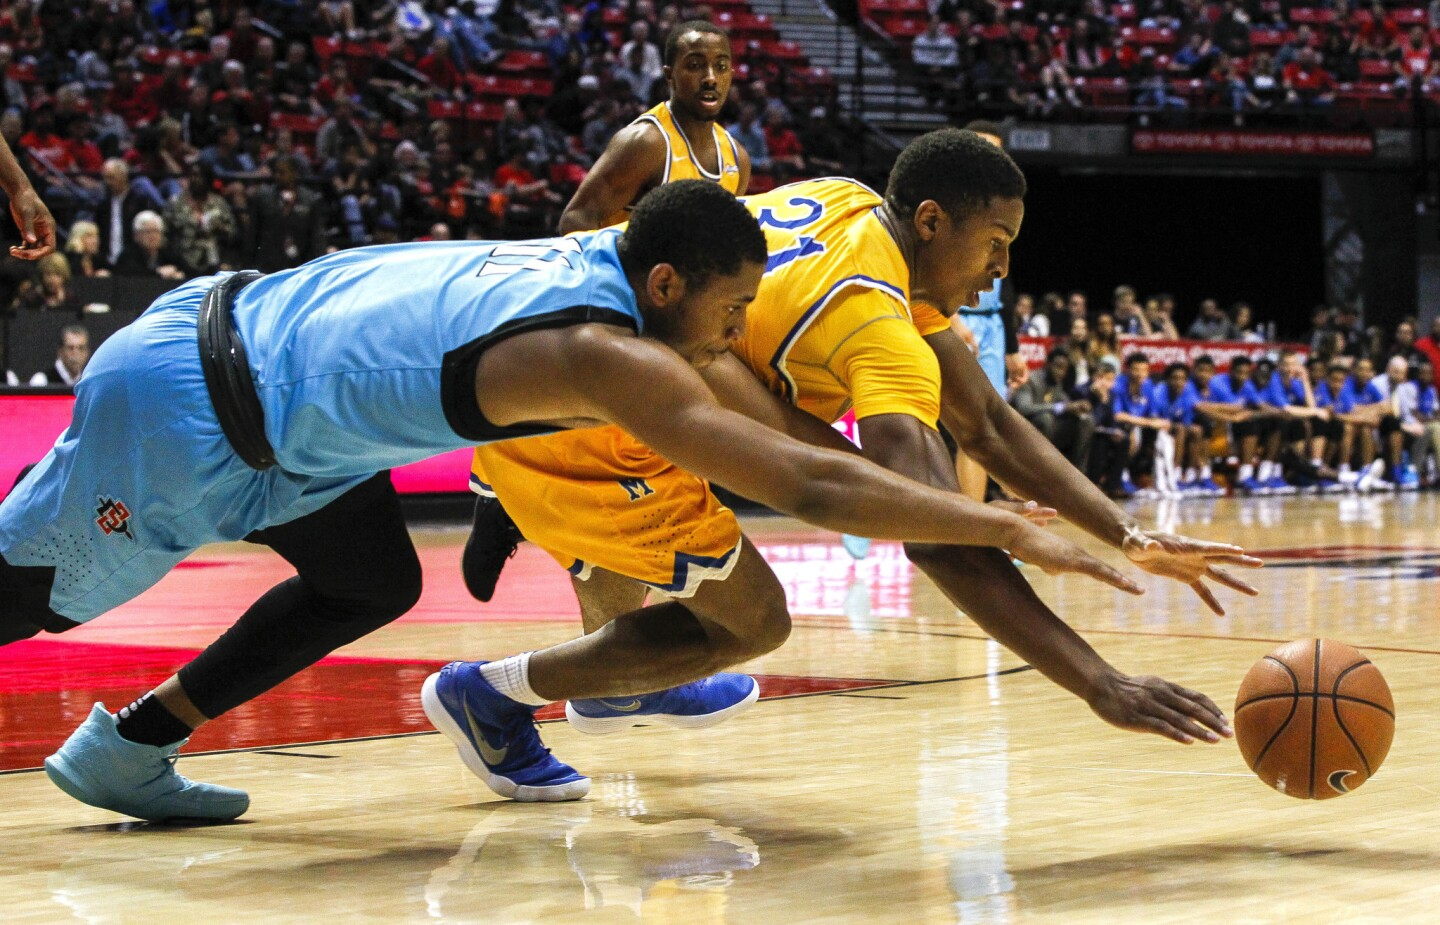 The Aztecs' Matt Mitchell, left, and McNeese State's Stephen Ugochukwu dive for a loose ball during the second half.